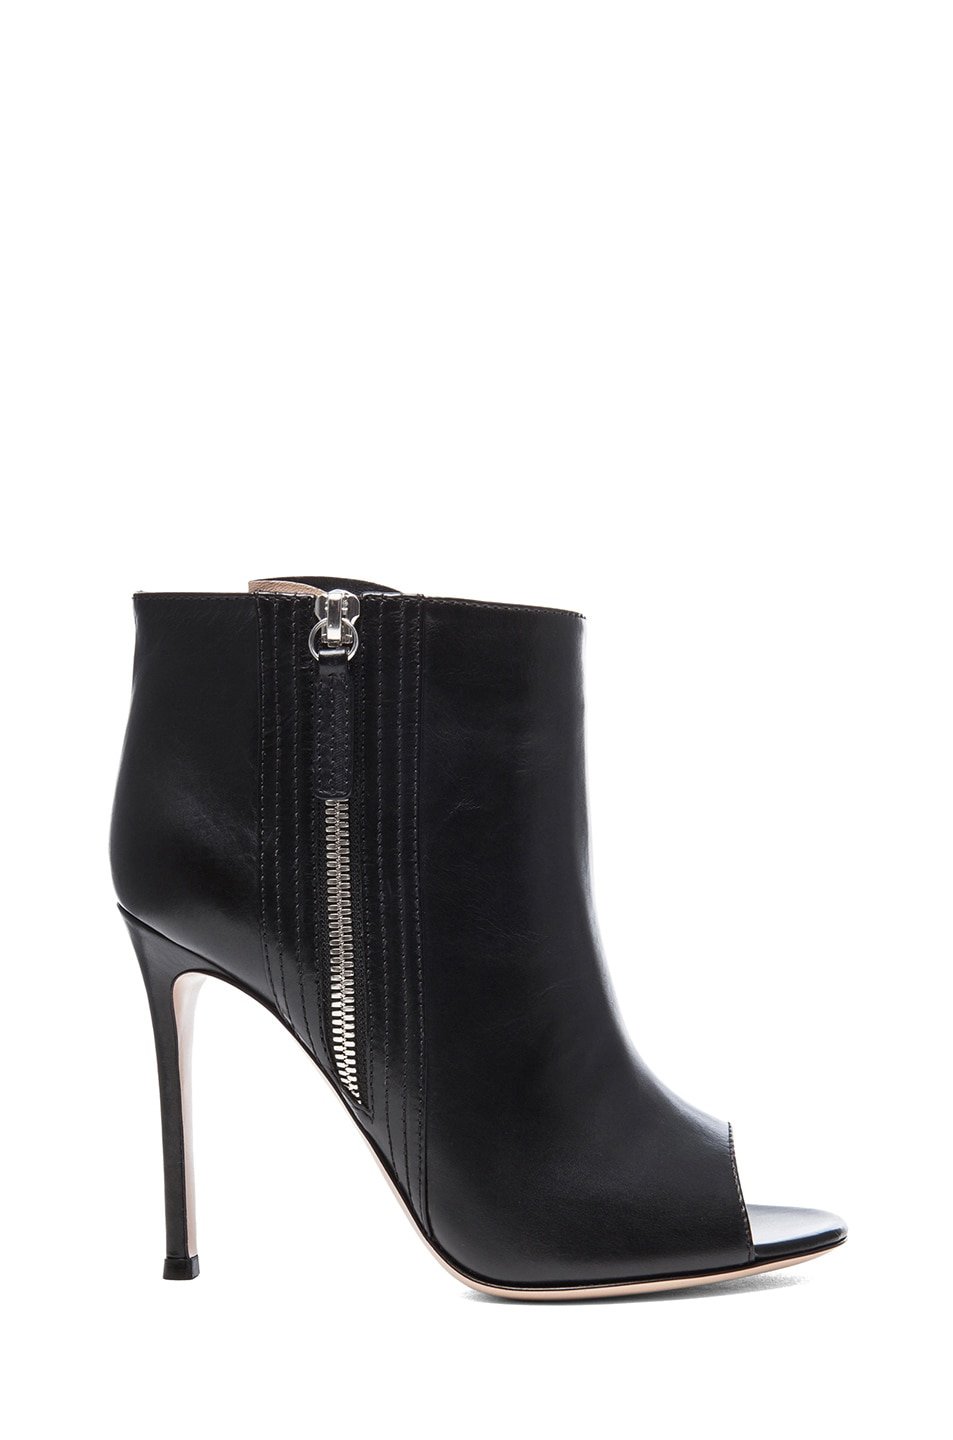 Image 1 of Gianvito Rossi Open Toe Leather Booties in Black